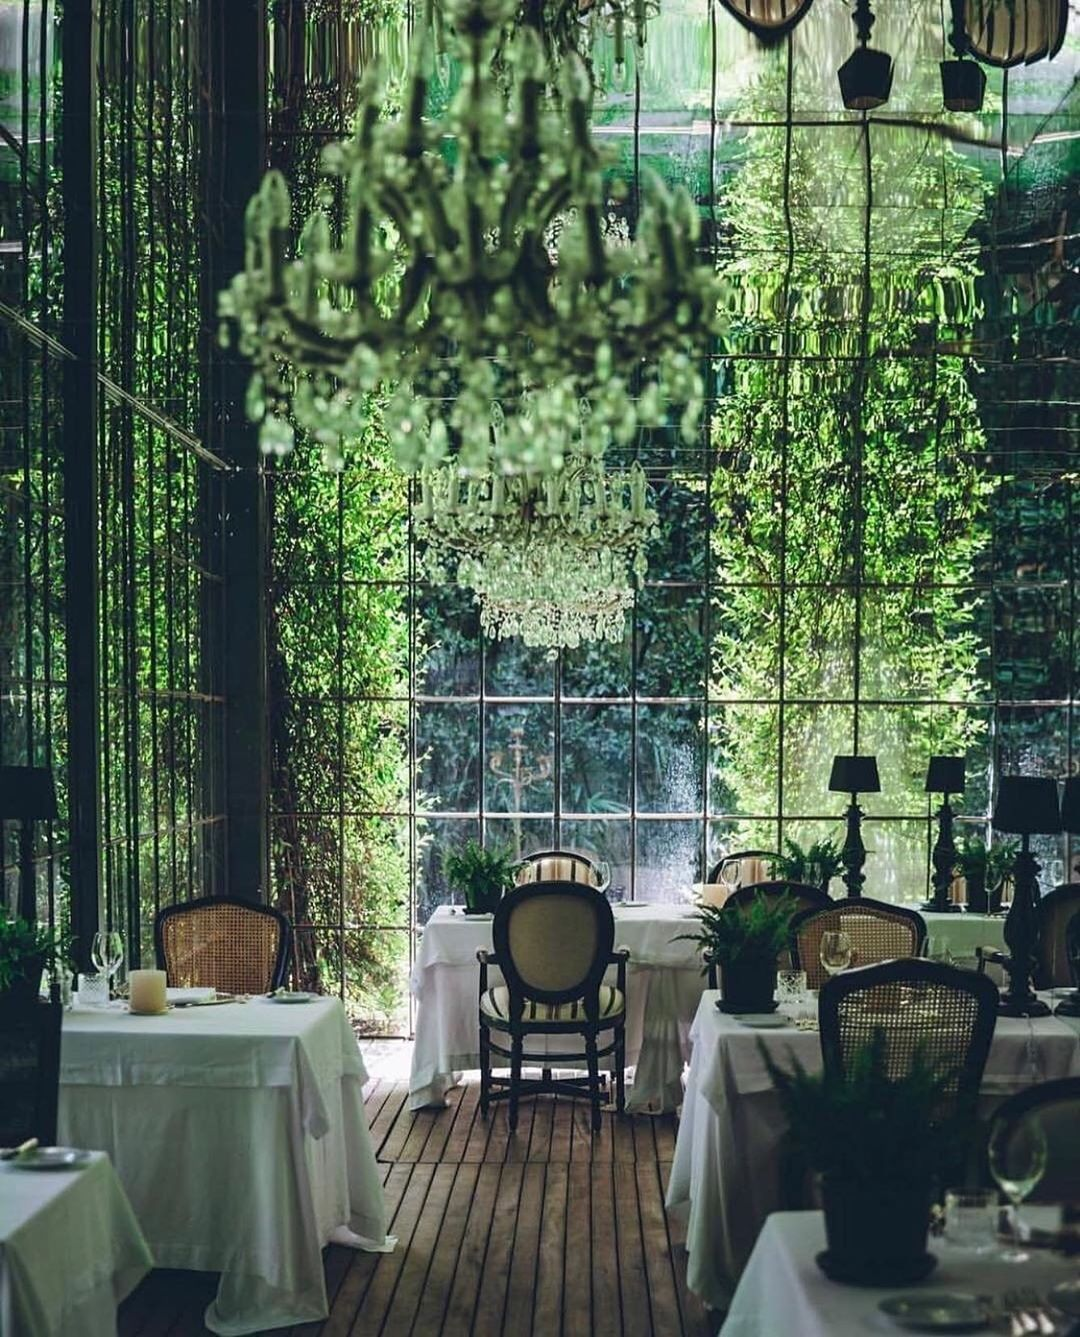 This restaurant in Italy at a luxury spa resort is an epic example of the feel-good powers of biophilic design.